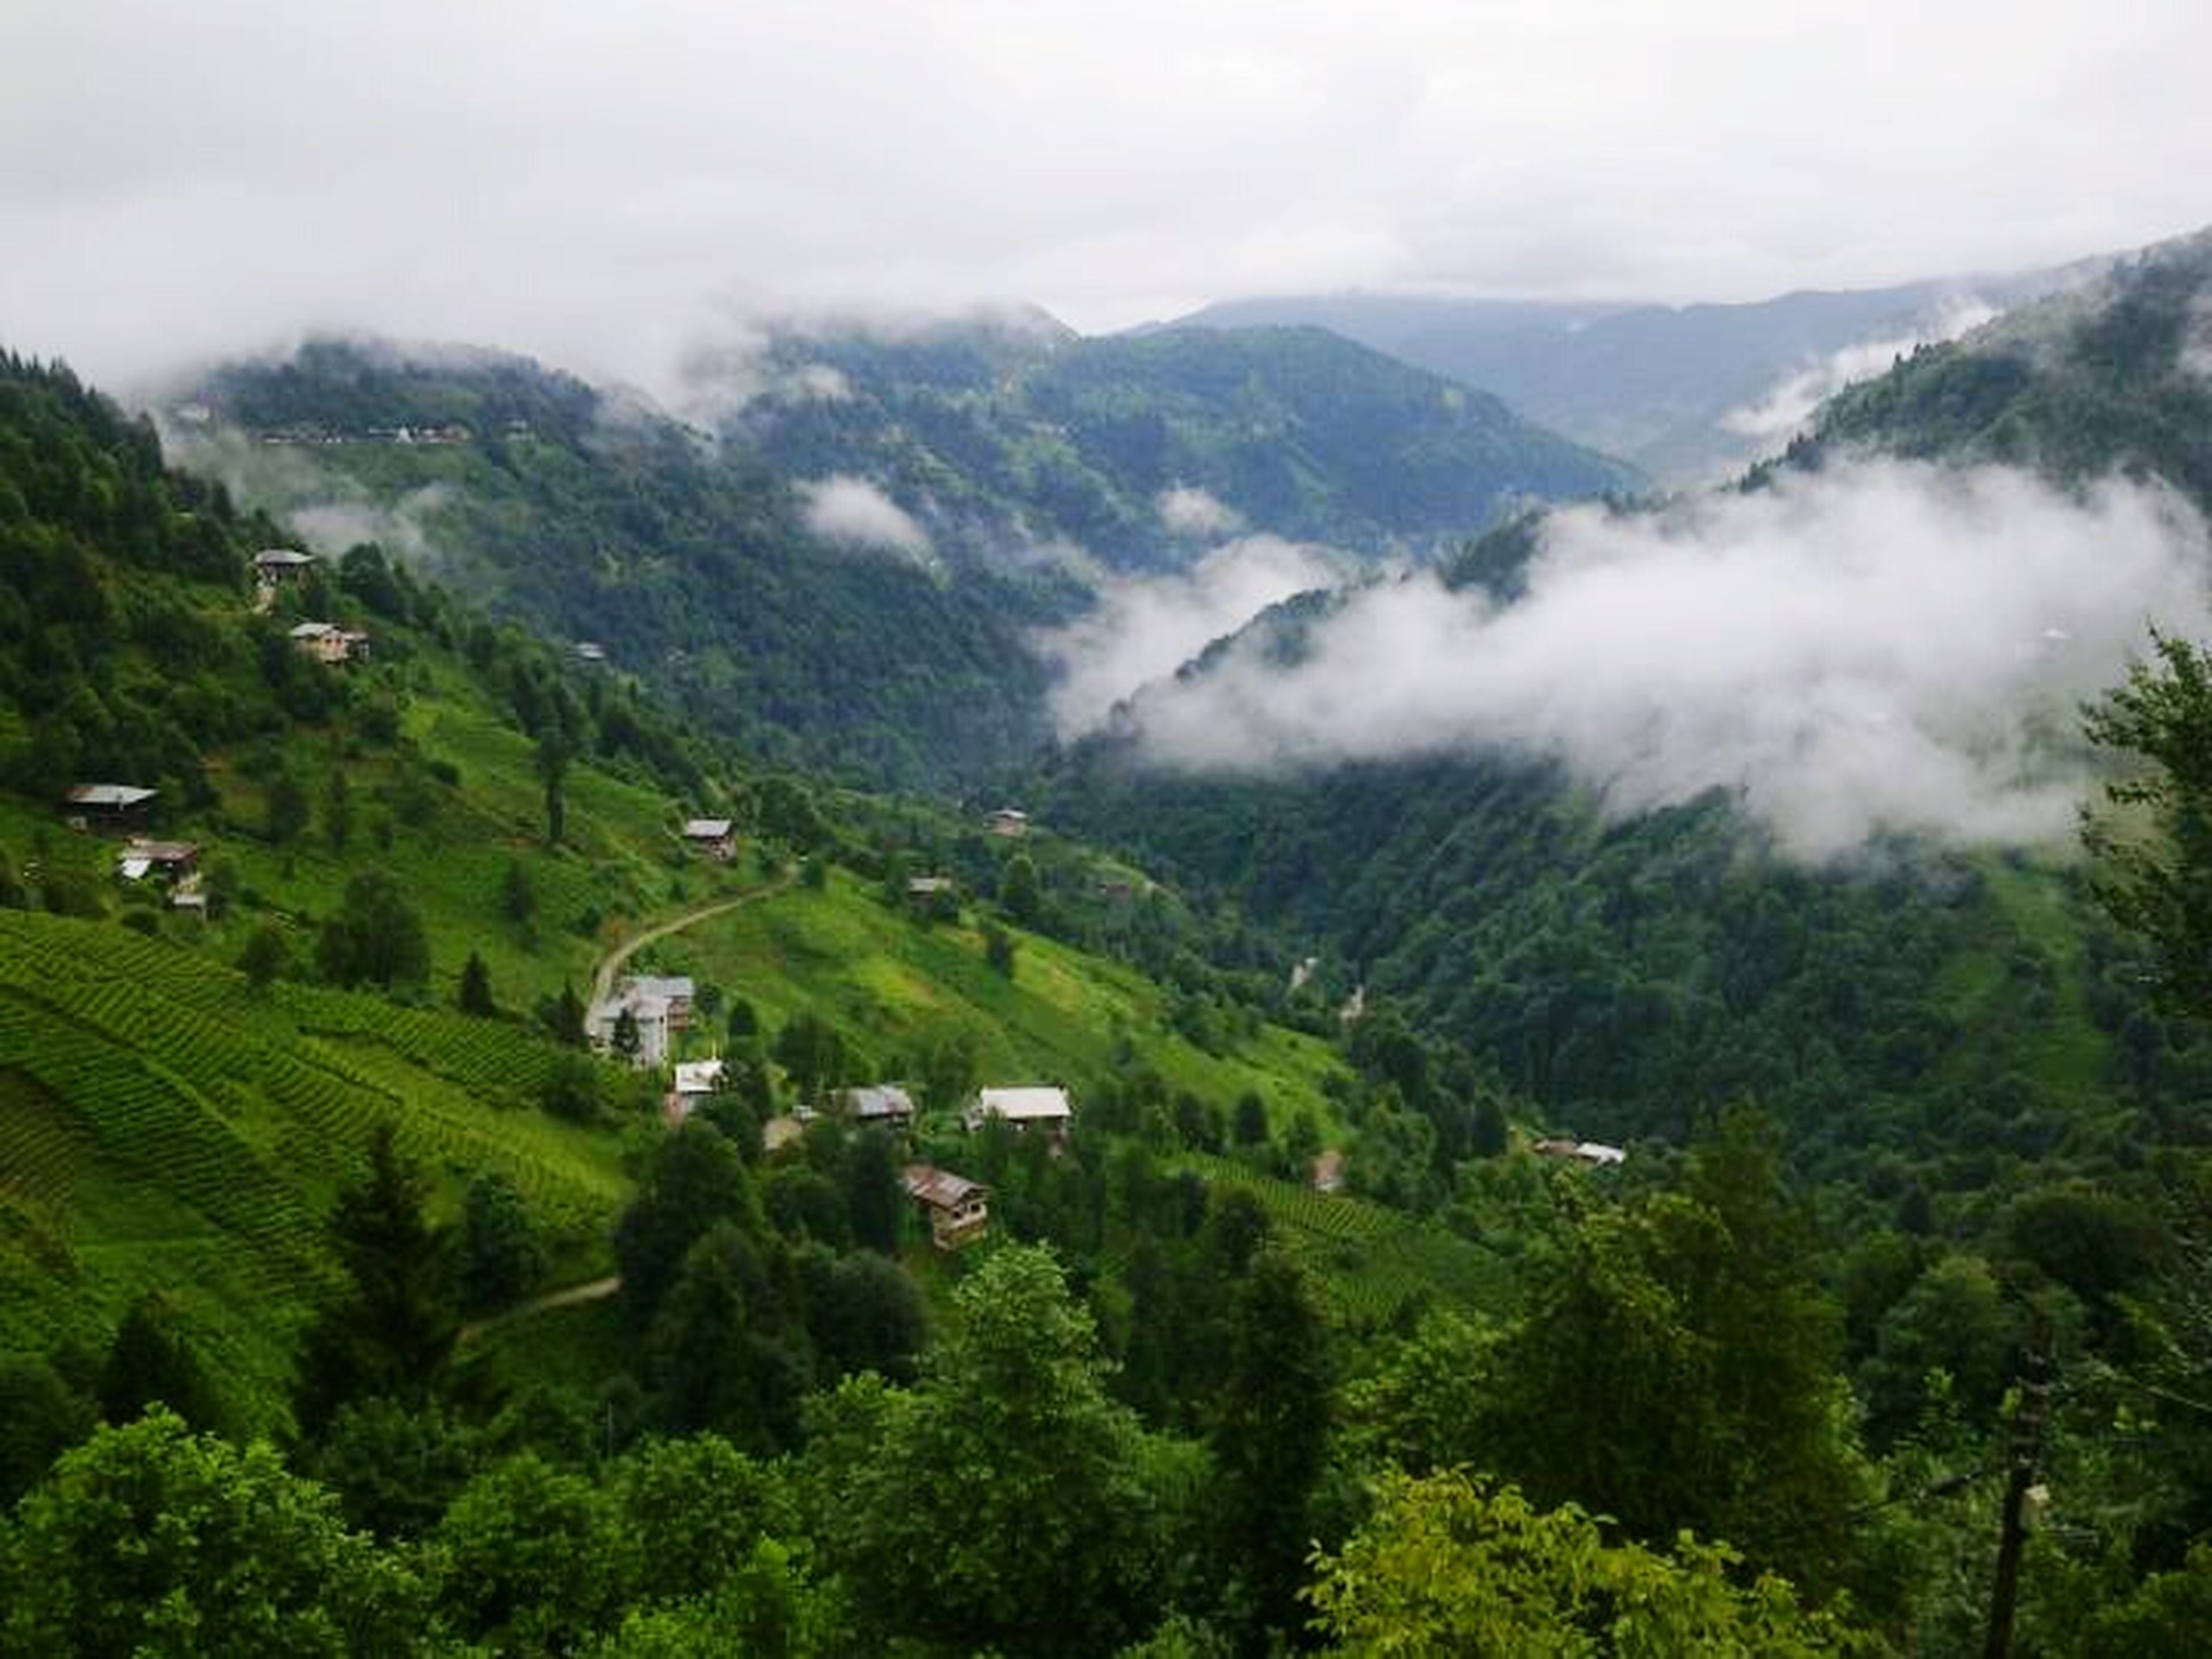 mountain, tree, scenics, tranquil scene, landscape, green color, tranquility, beauty in nature, lush foliage, high angle view, nature, mountain range, growth, sky, valley, forest, fog, non-urban scene, idyllic, green